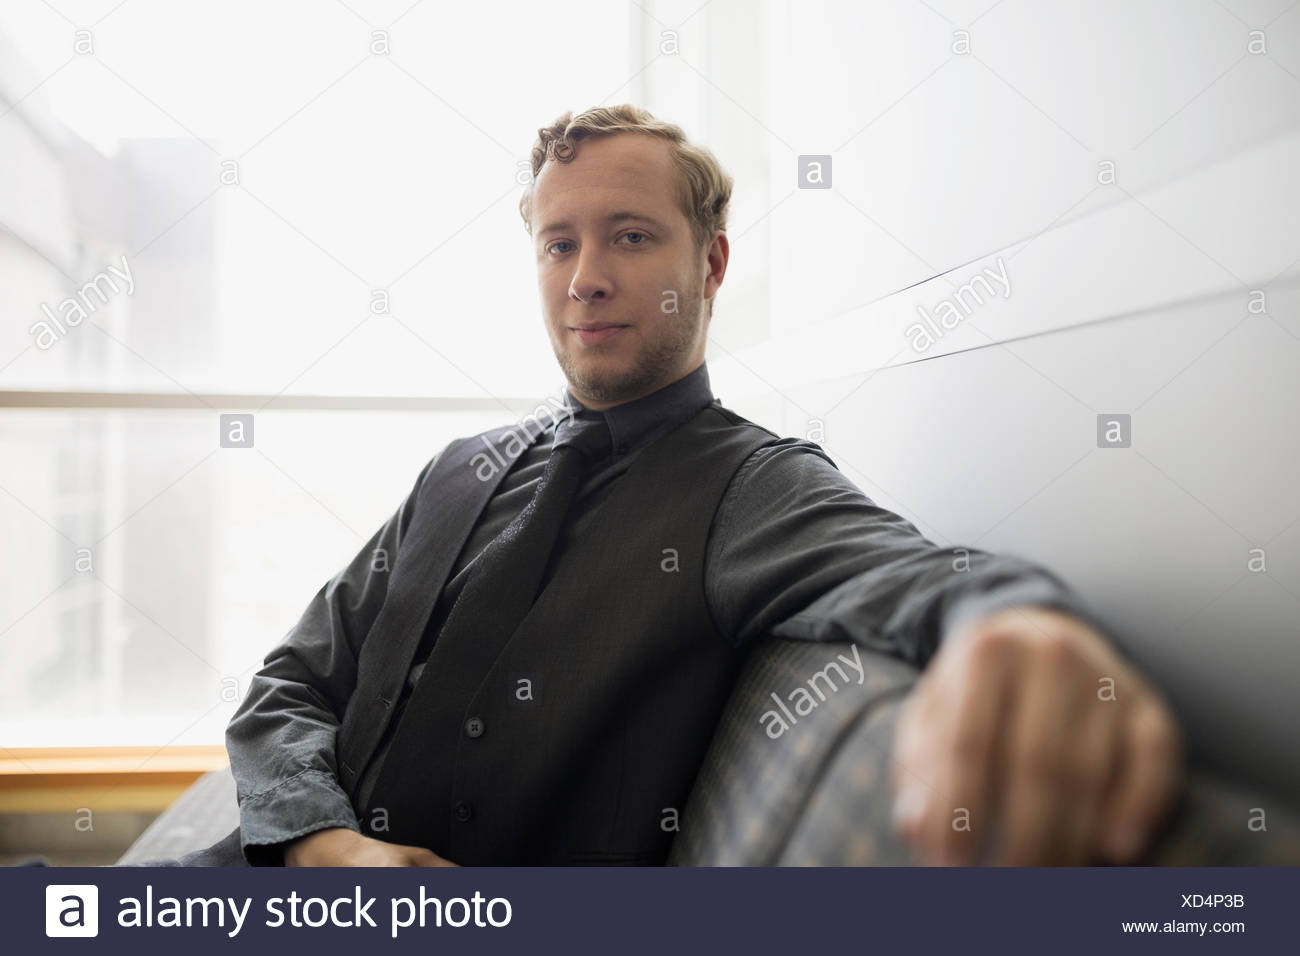 Confident businessman Portrait Photo Stock